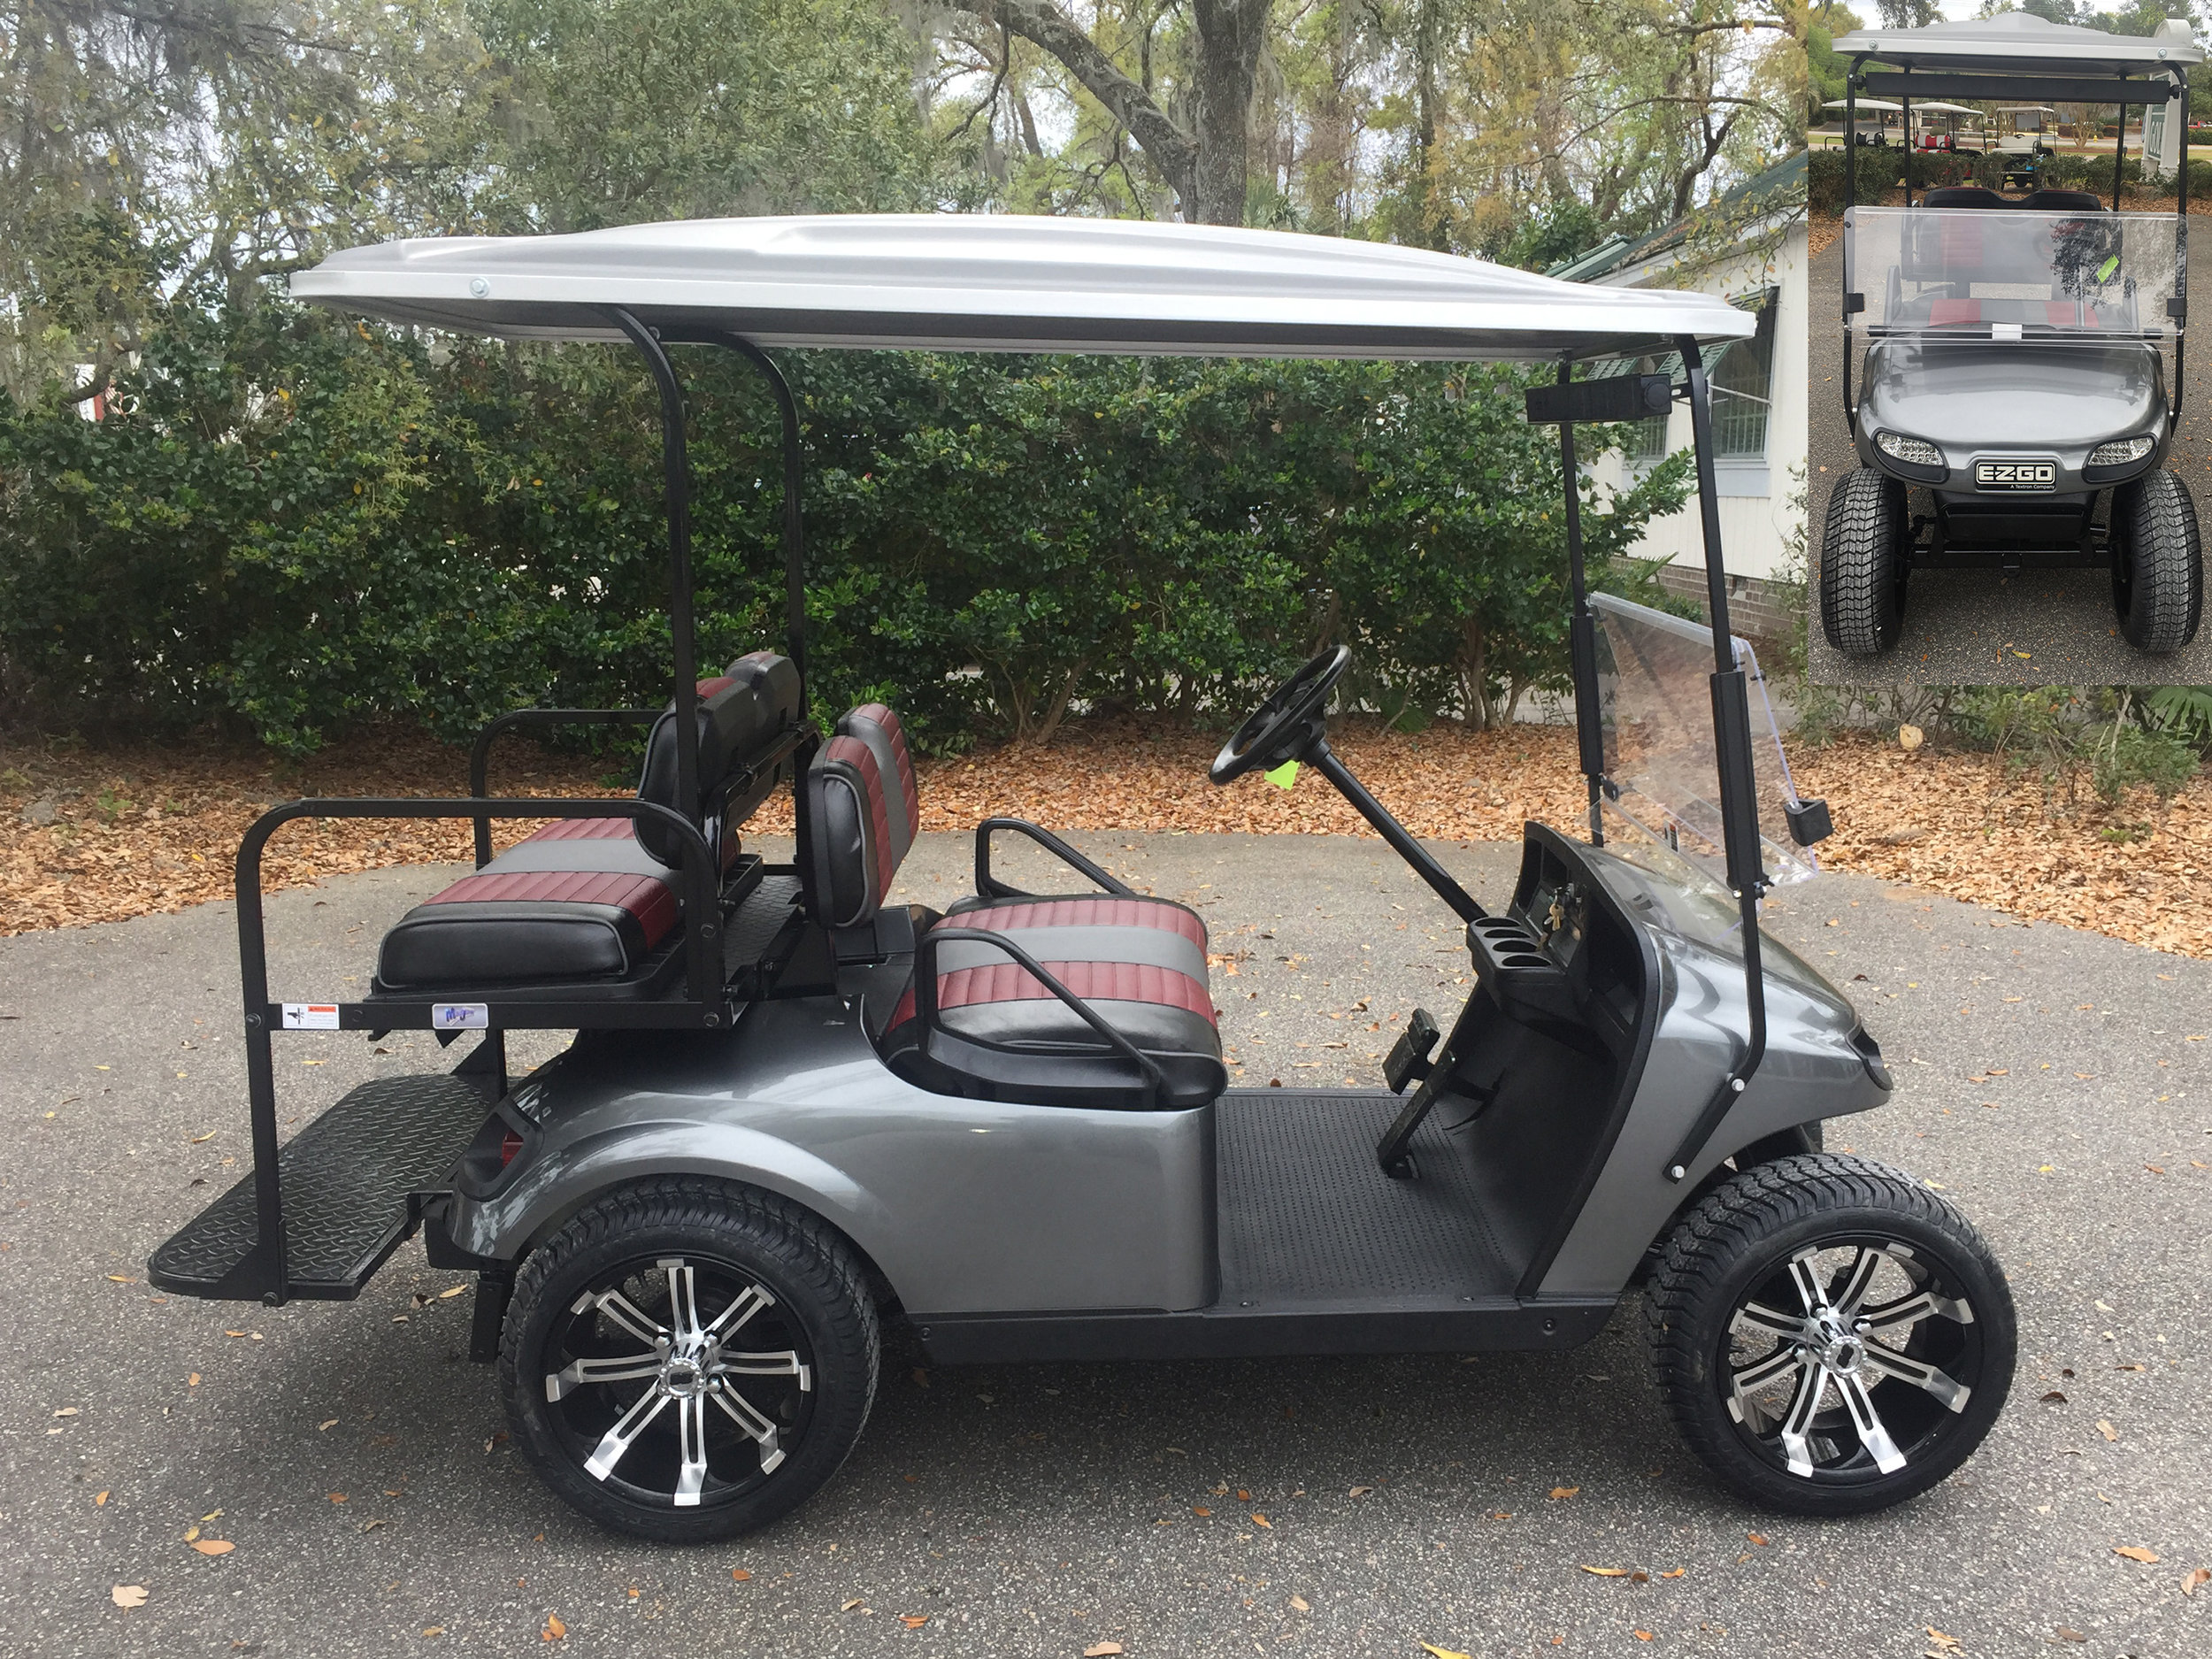 2015 Charcoal EZGO Cart  Charcoal/maroon/black seats, gray extended top, new 2019 batteries, high speed code, LED lights, Lo Pro tires, mirror, and flip windshield